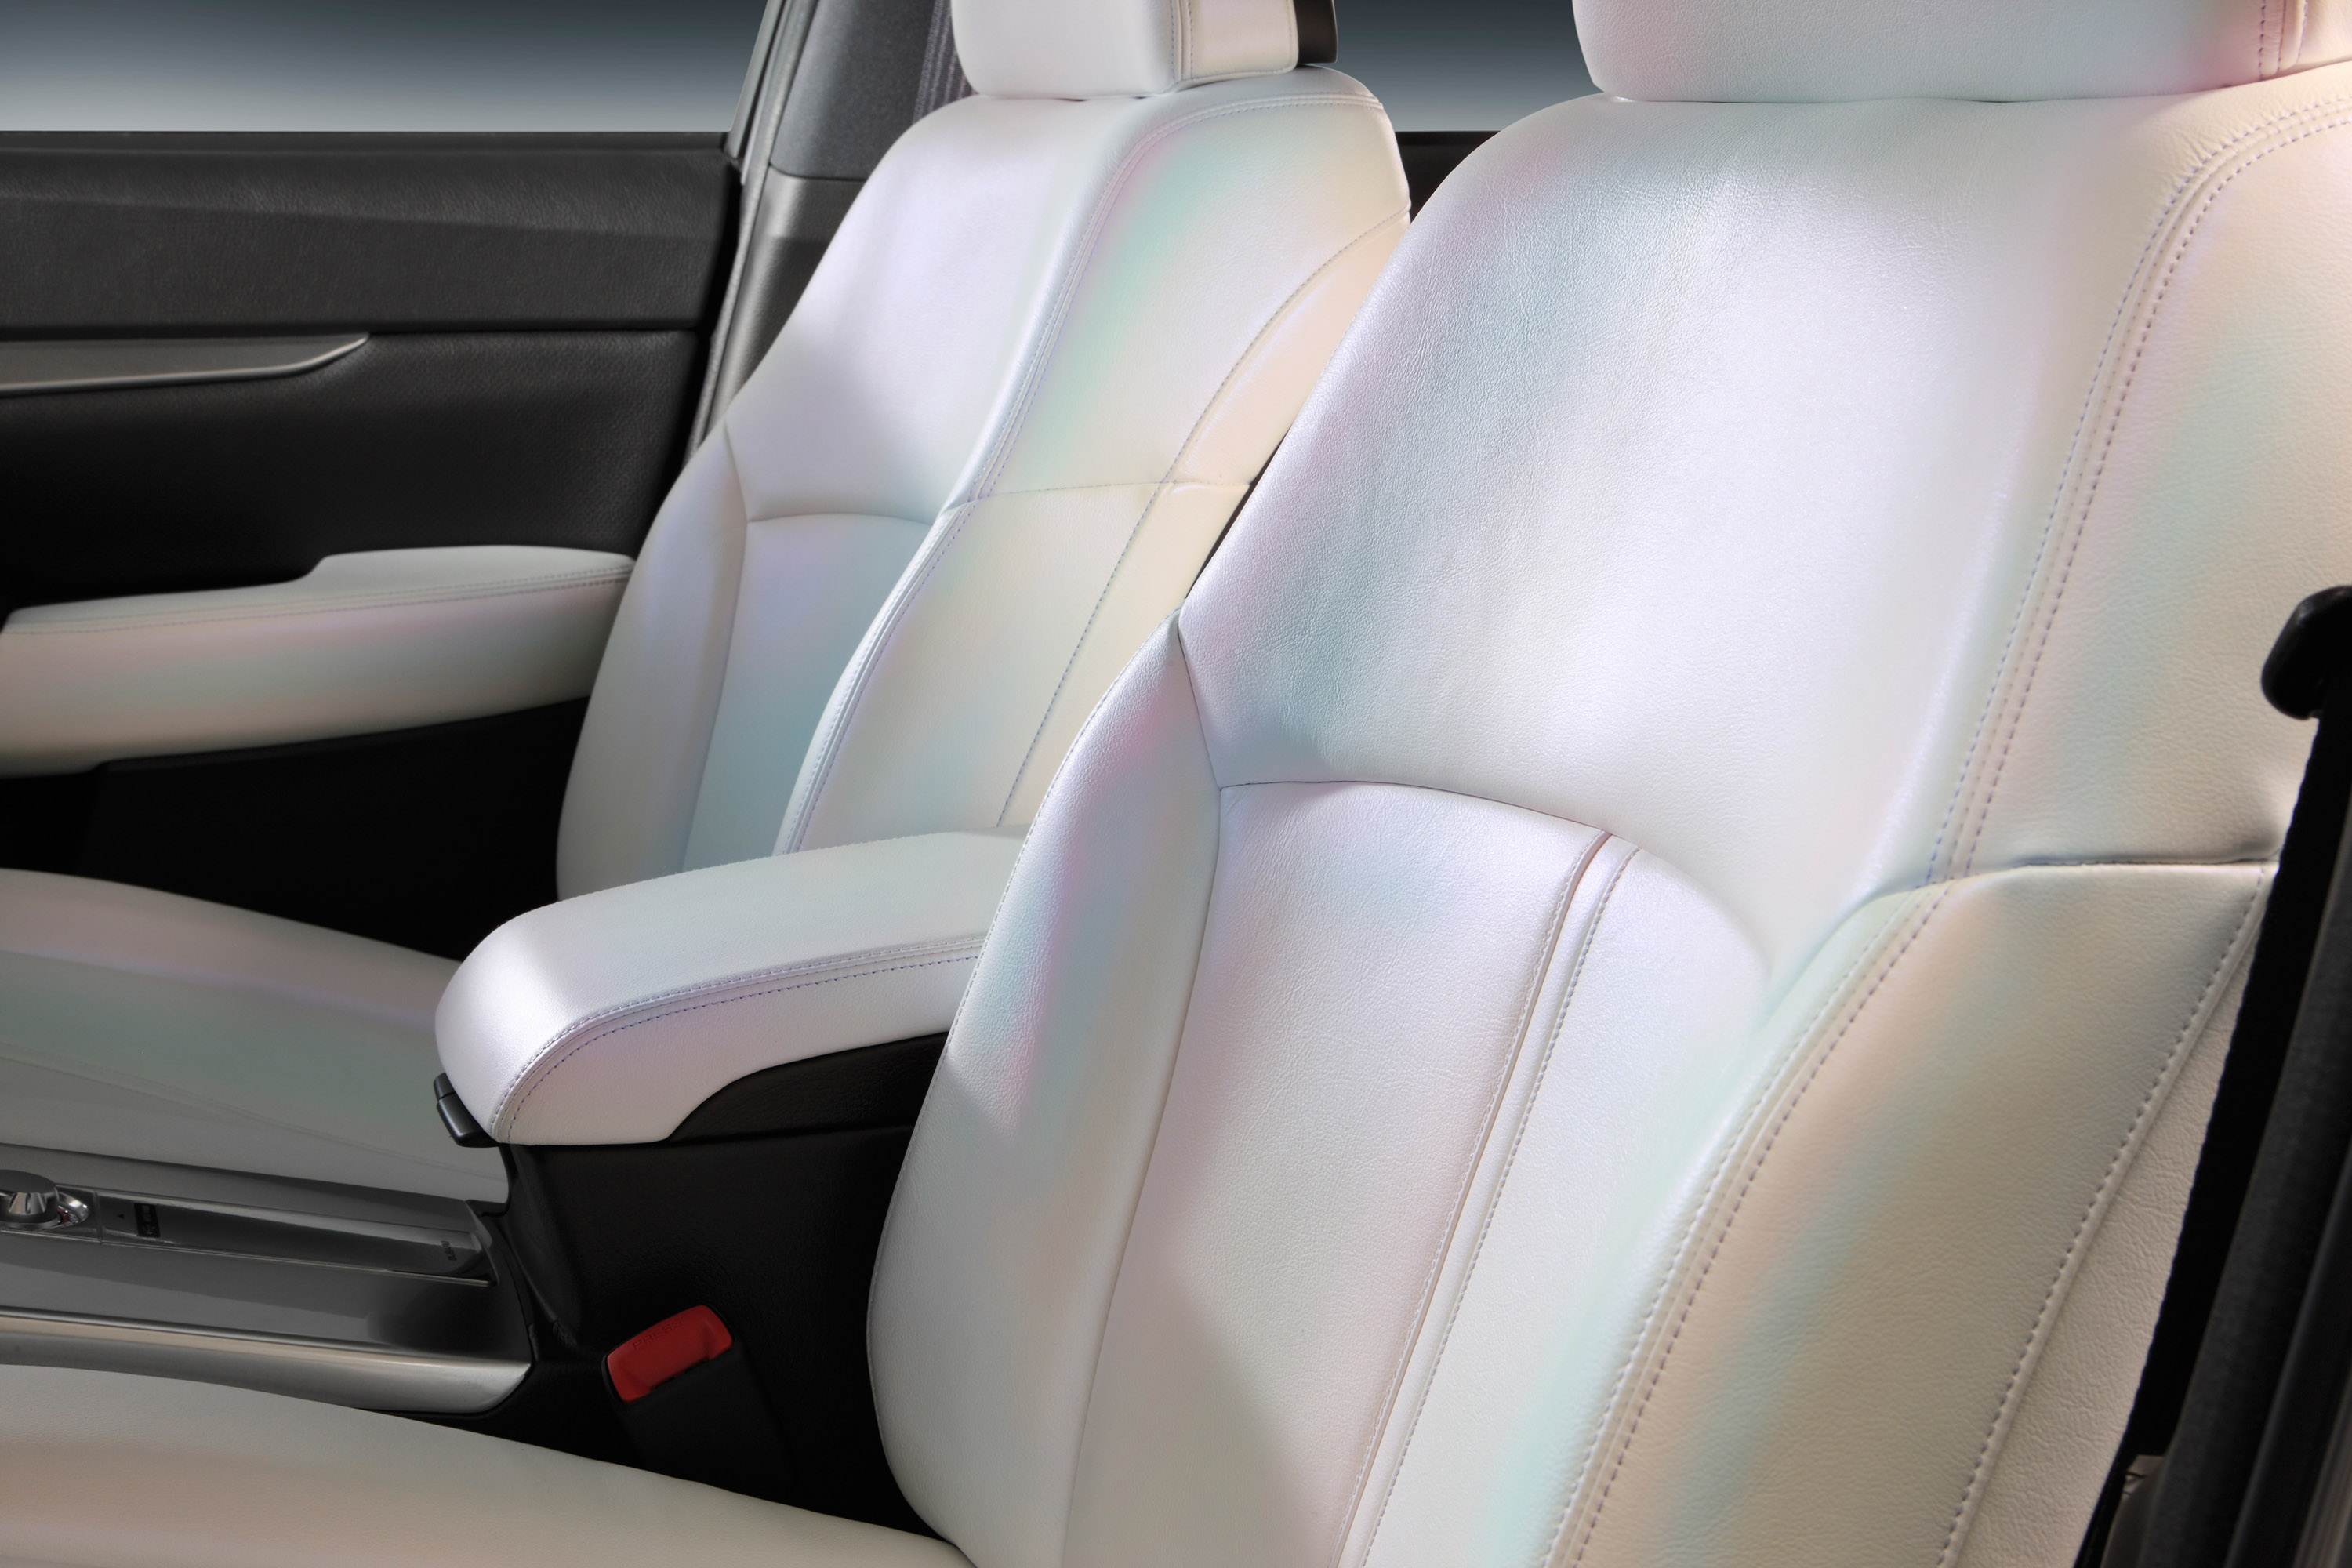 2009 nissan sentra se r picture 36632 chrysler grand voyager subaru legacy concept vanachro Image collections